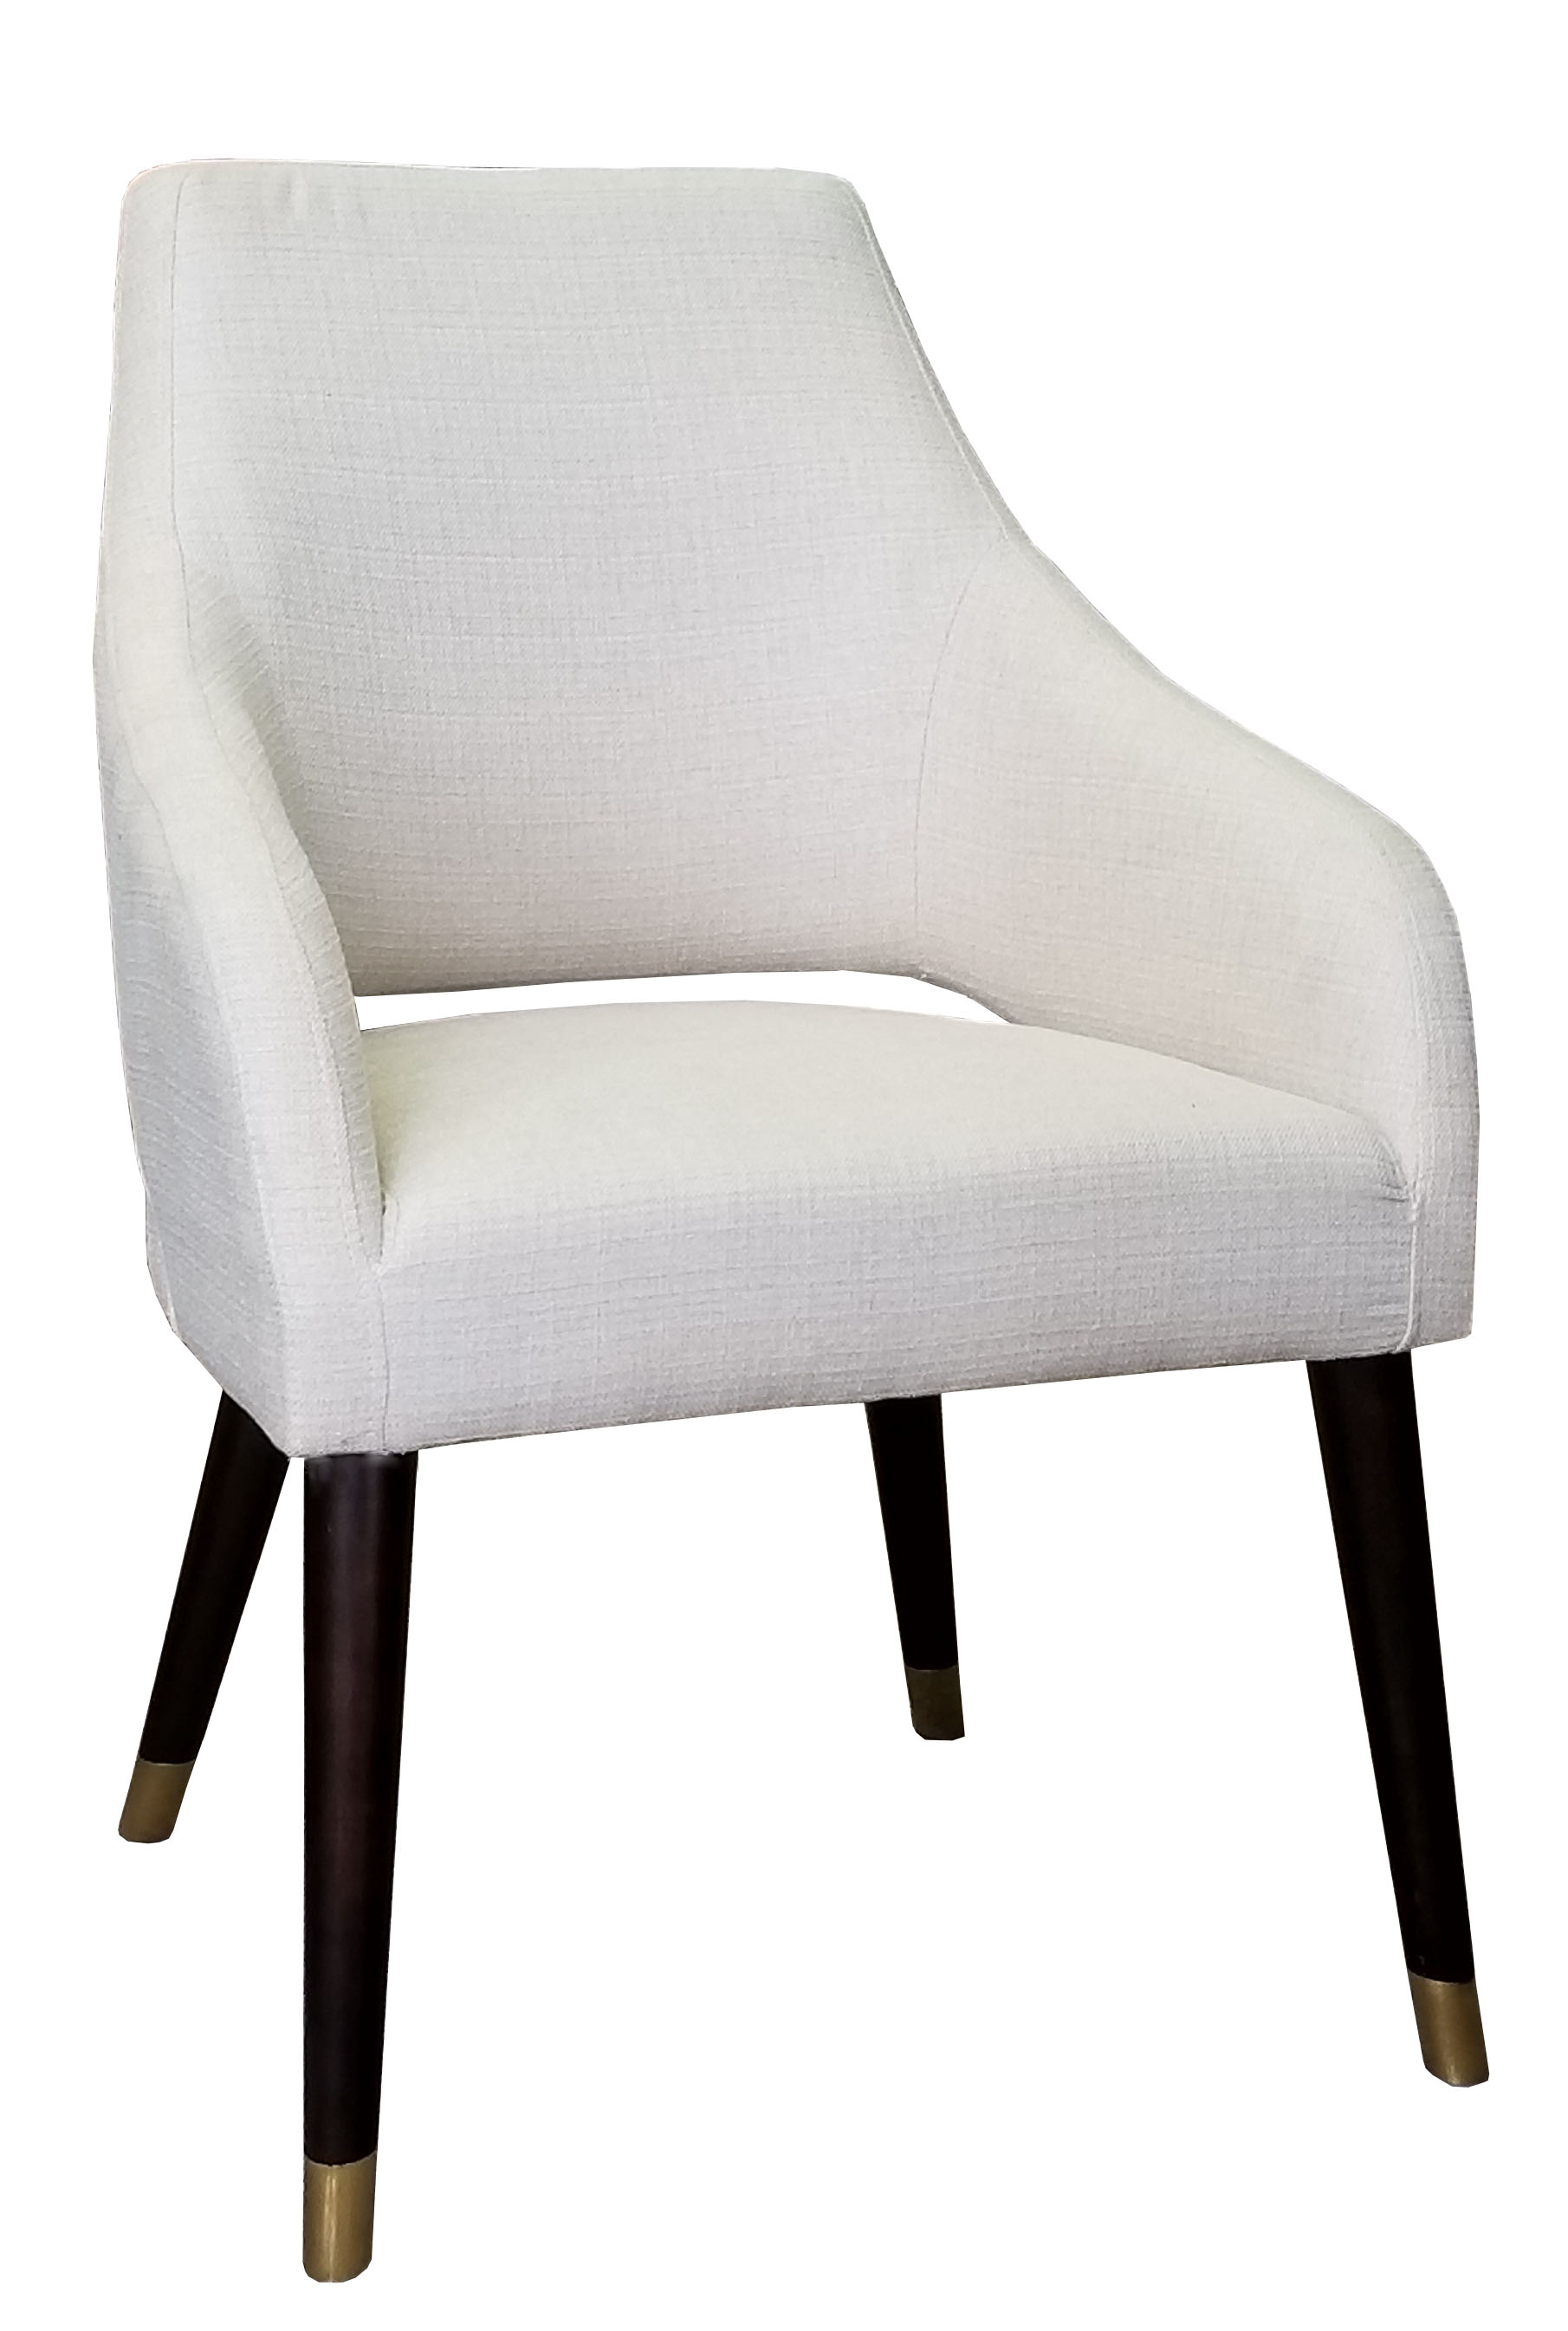 Chairs Dining Chairs Off White Fabric Dining Arm